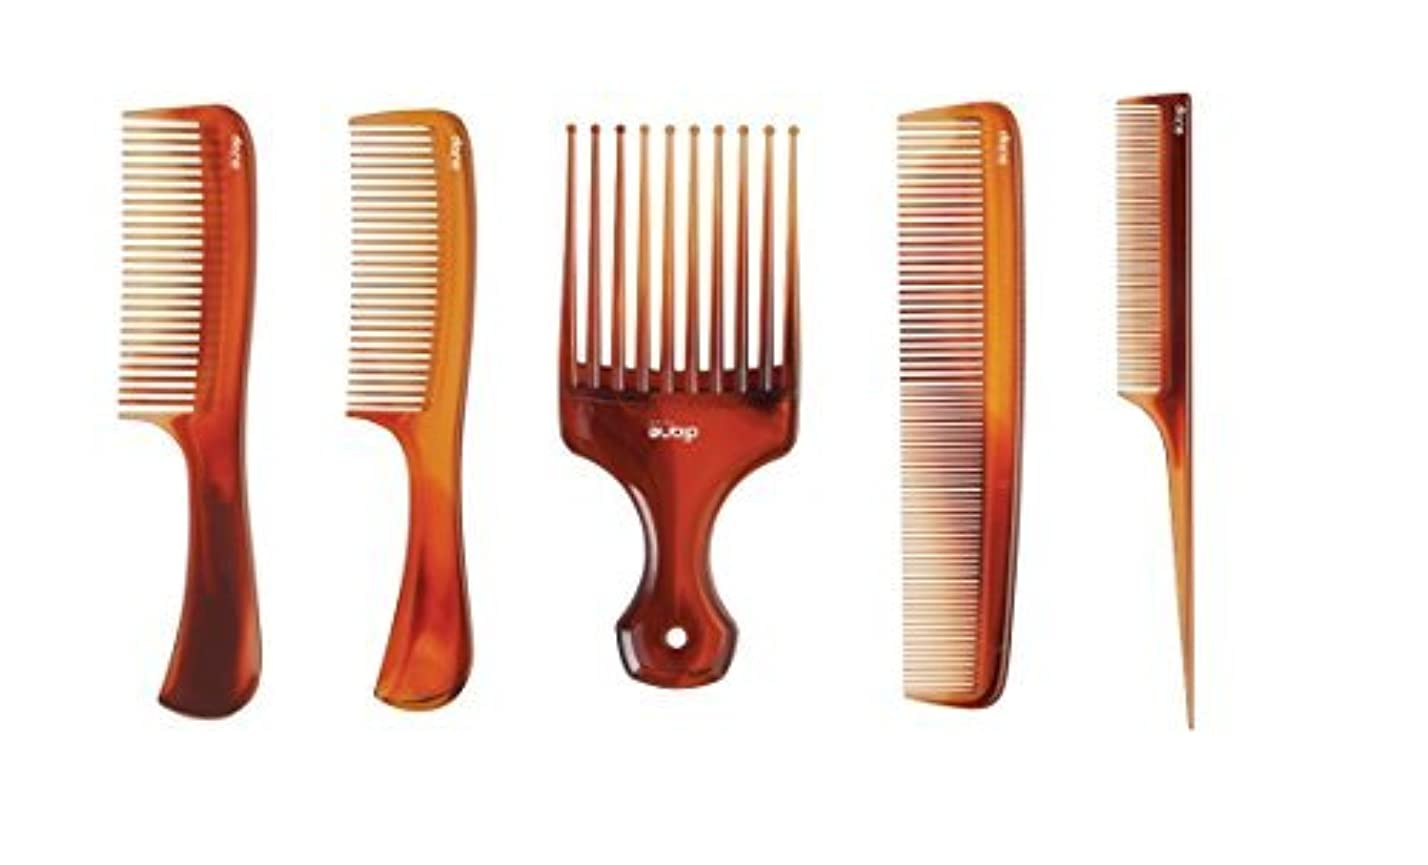 文字ブラスト匹敵しますMayaBeauty (5-pack) Tortoise Comb Kit (Includes: Lift Comb/Pik, Large Shampoo Comb,Small Shampoo Comb, Dressing...